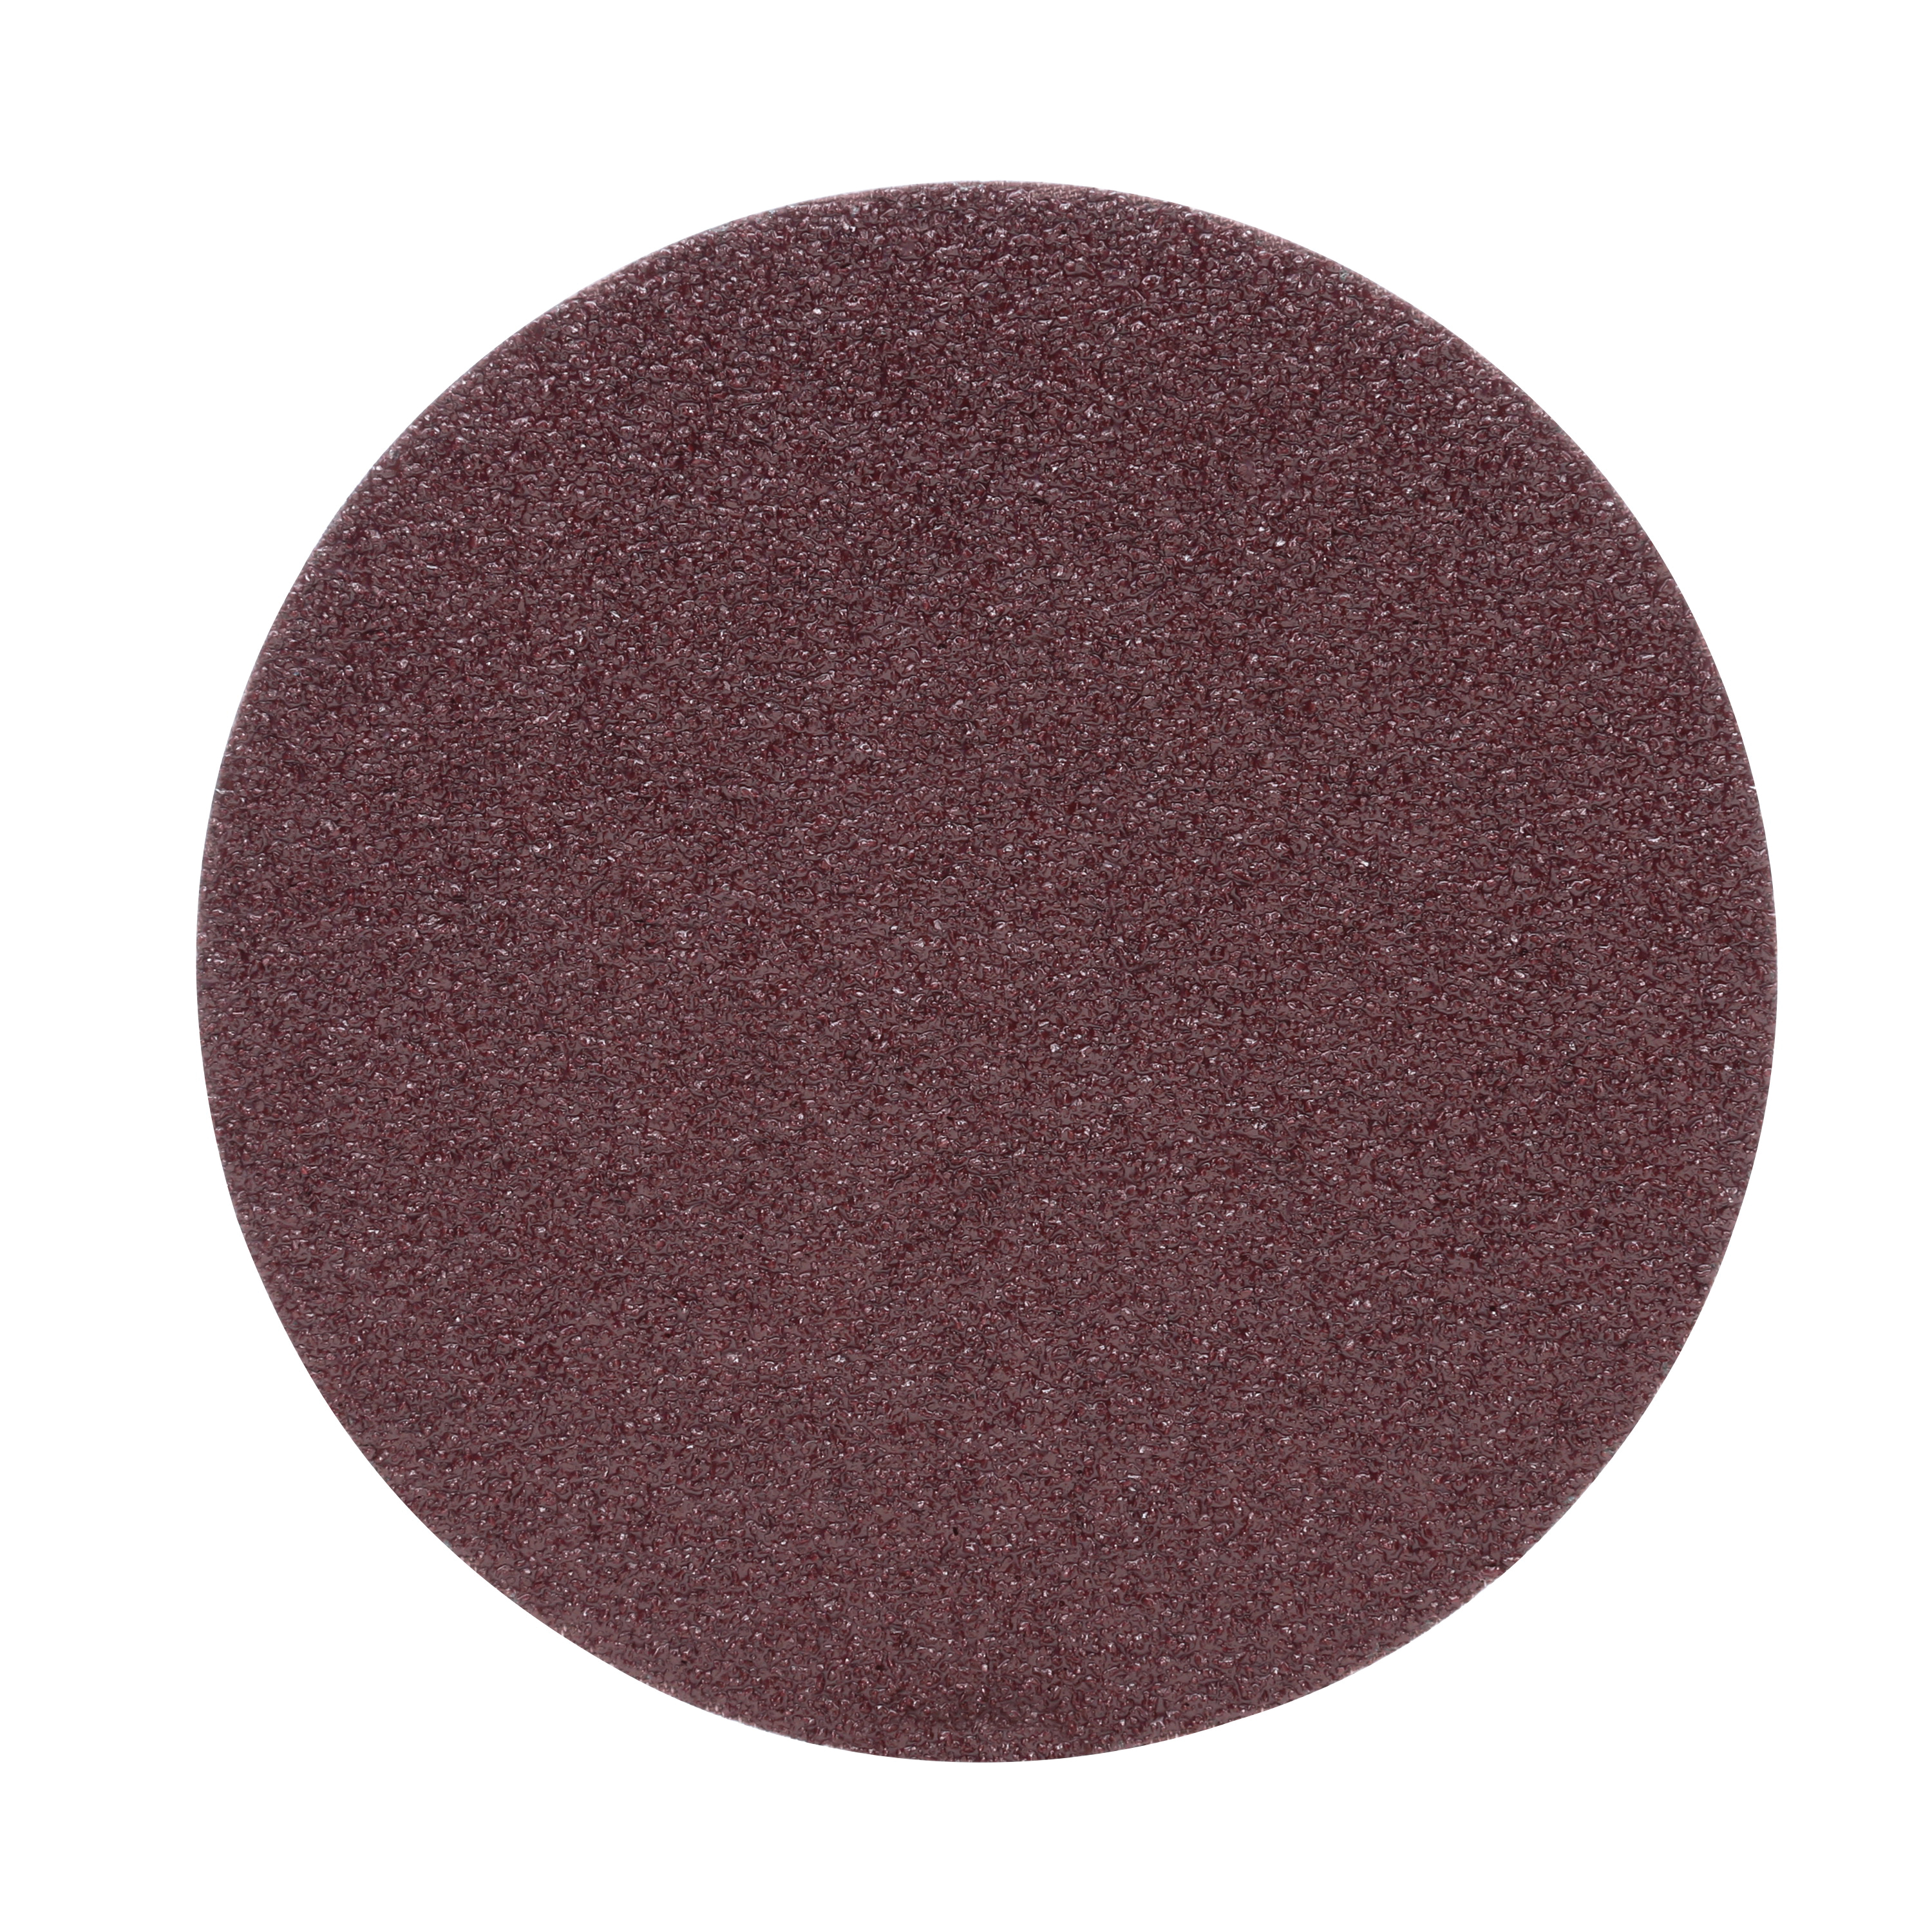 3M™ 051144-21639 Heavy Duty PSA Close Coated Abrasive Disc, 6 in Dia, 36 Grit, Very Coarse Grade, Aluminum Oxide Abrasive, Cloth Backing